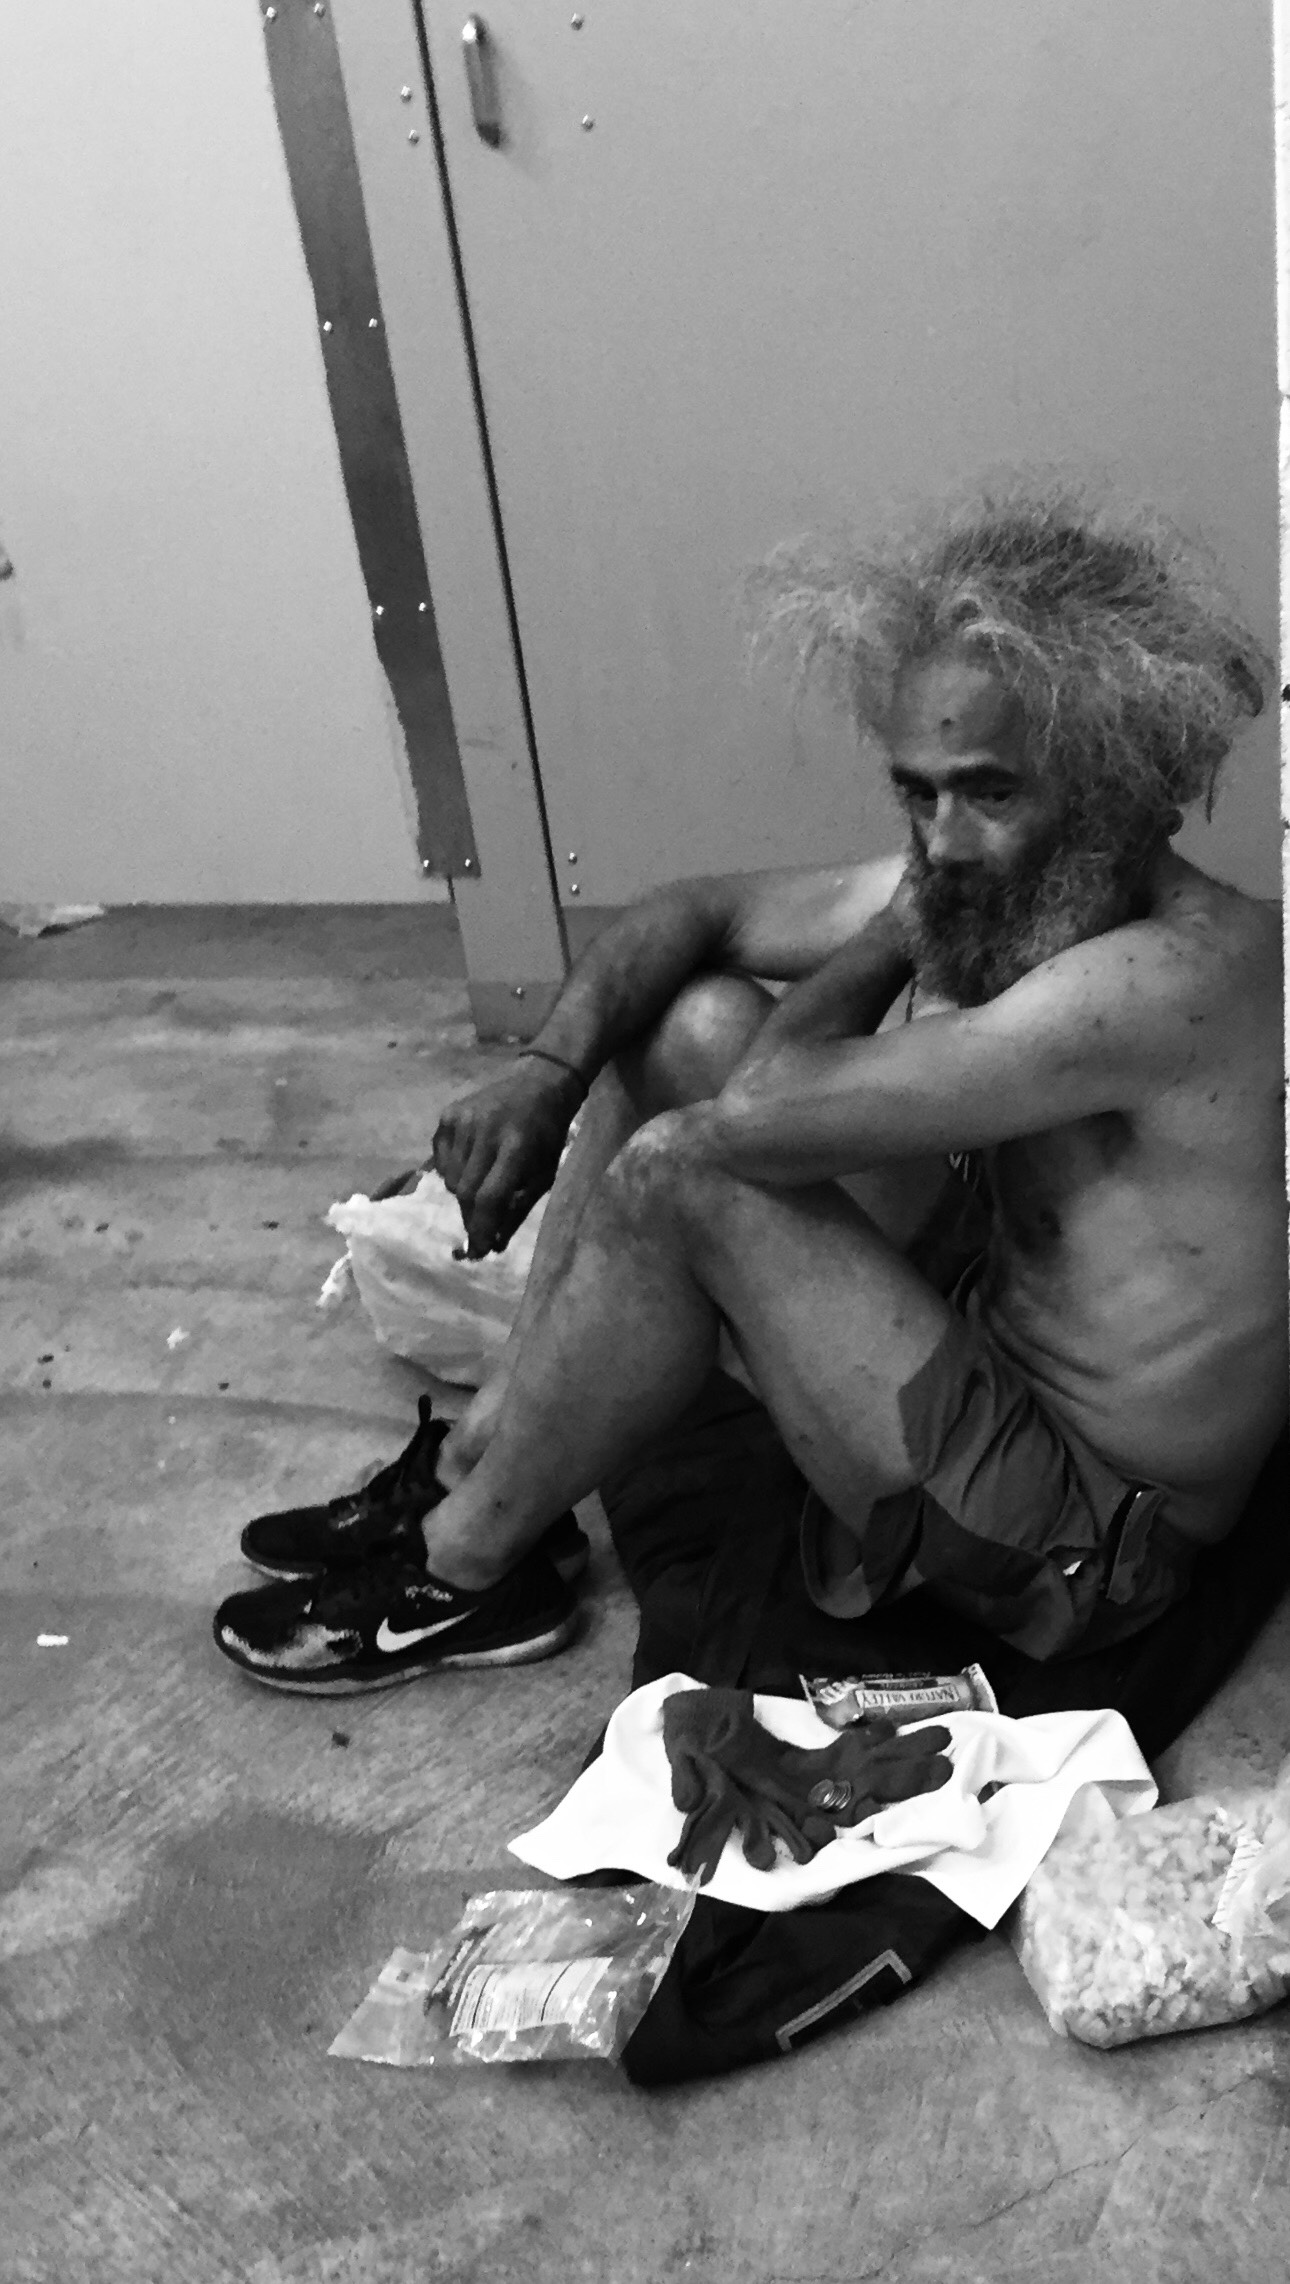 black and white photograph of a drug addict squatting on the floor of a bathroom